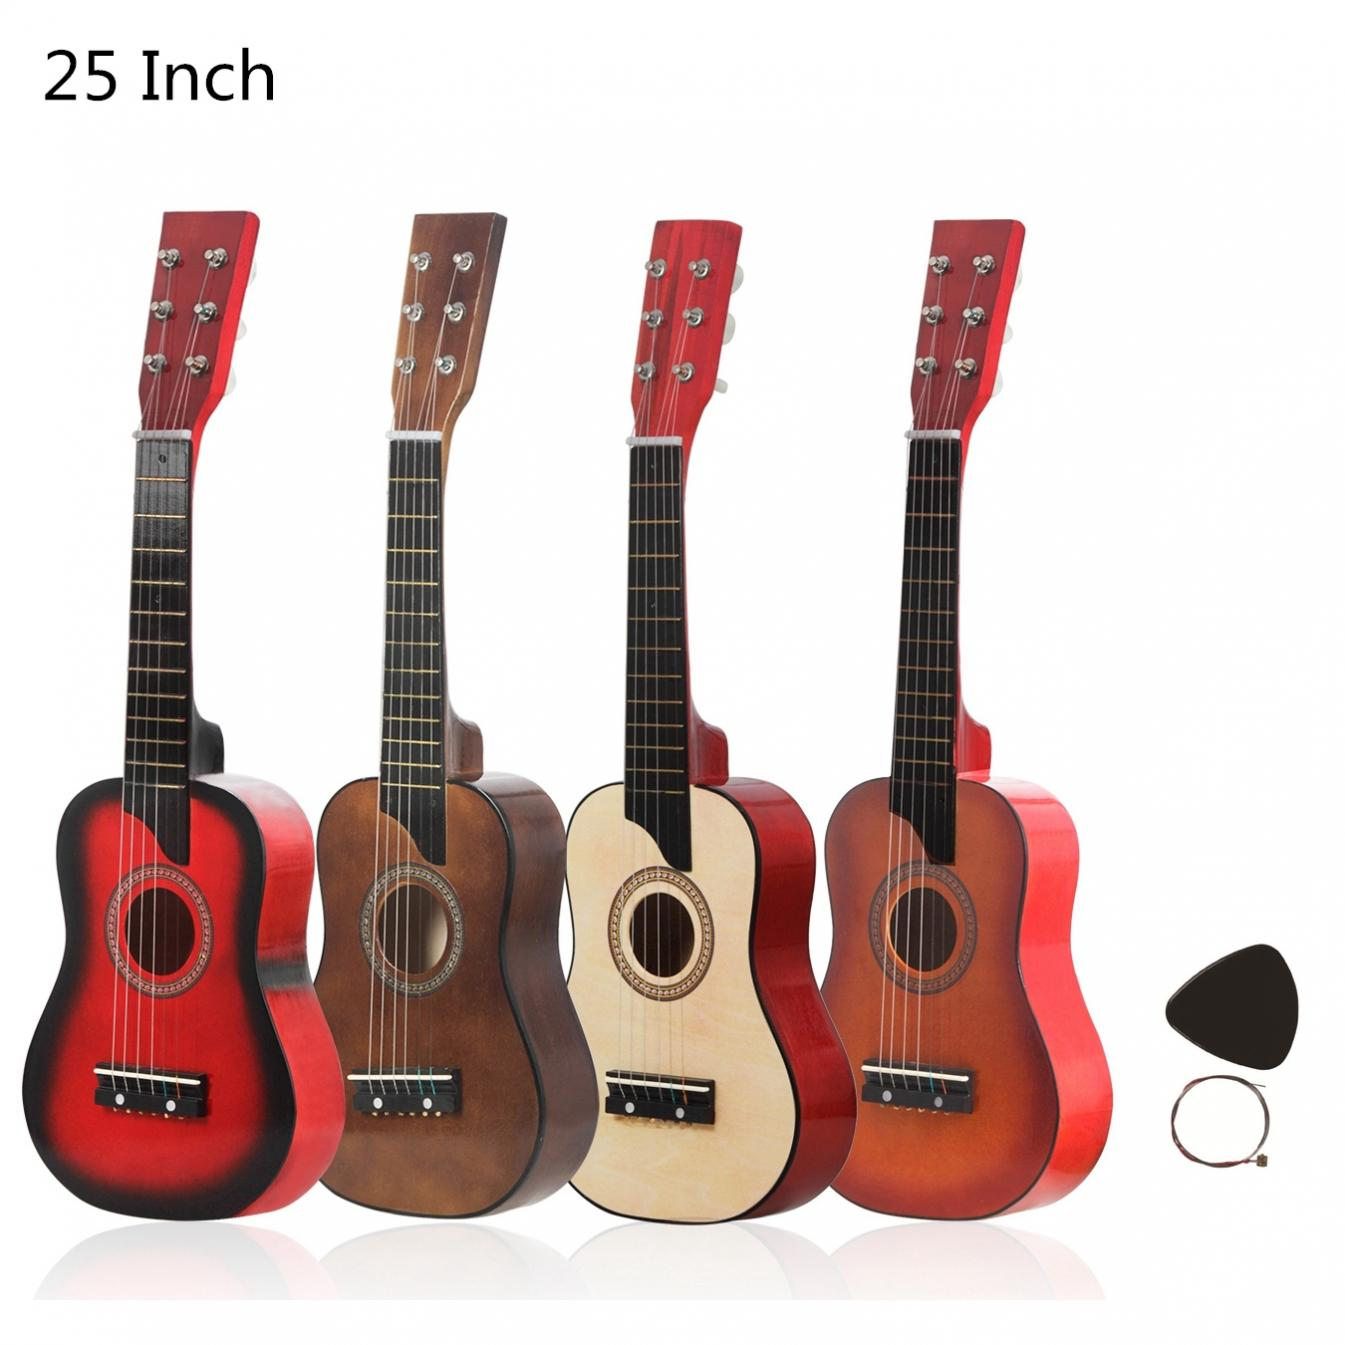 25 Inch Basswood Acoustic Guitar with Pick Strings for Children and Beginner Send gifts Musical Stringed Instrument hot image